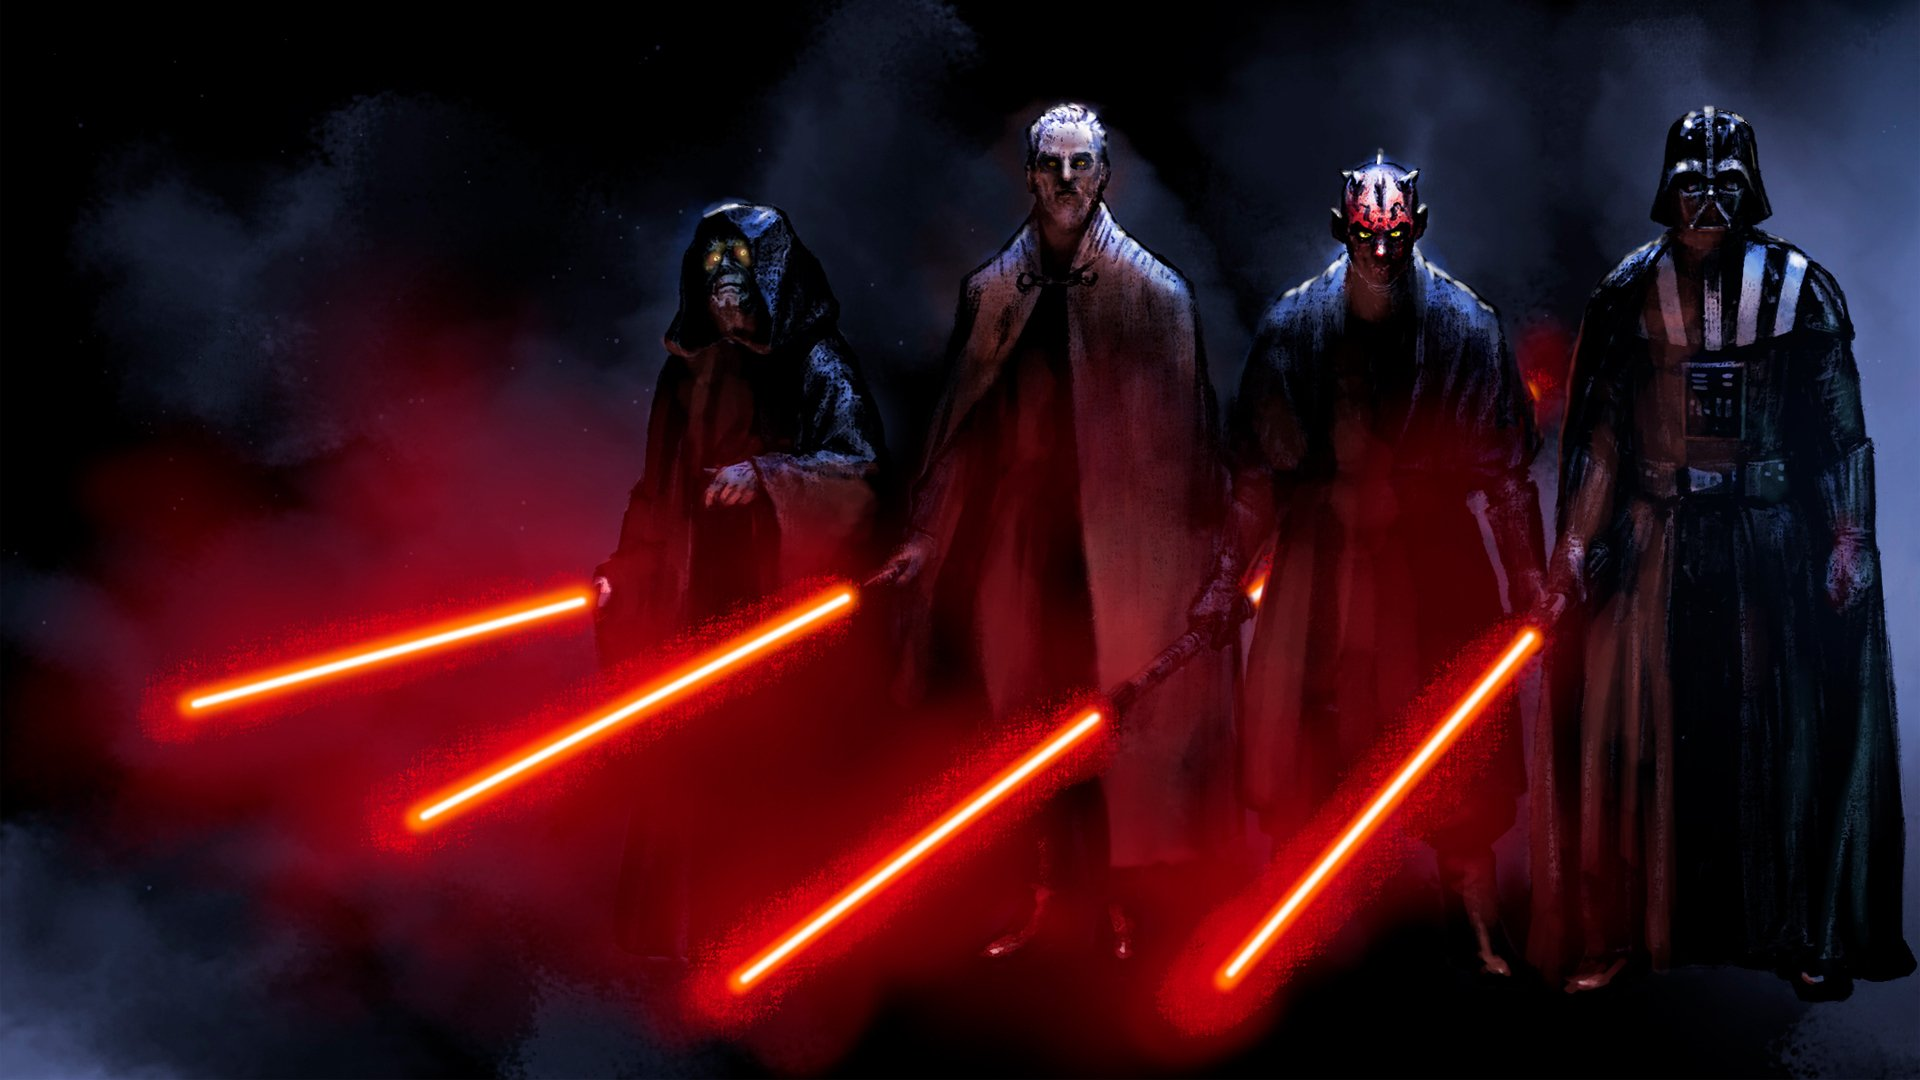 Sith Lords star wars